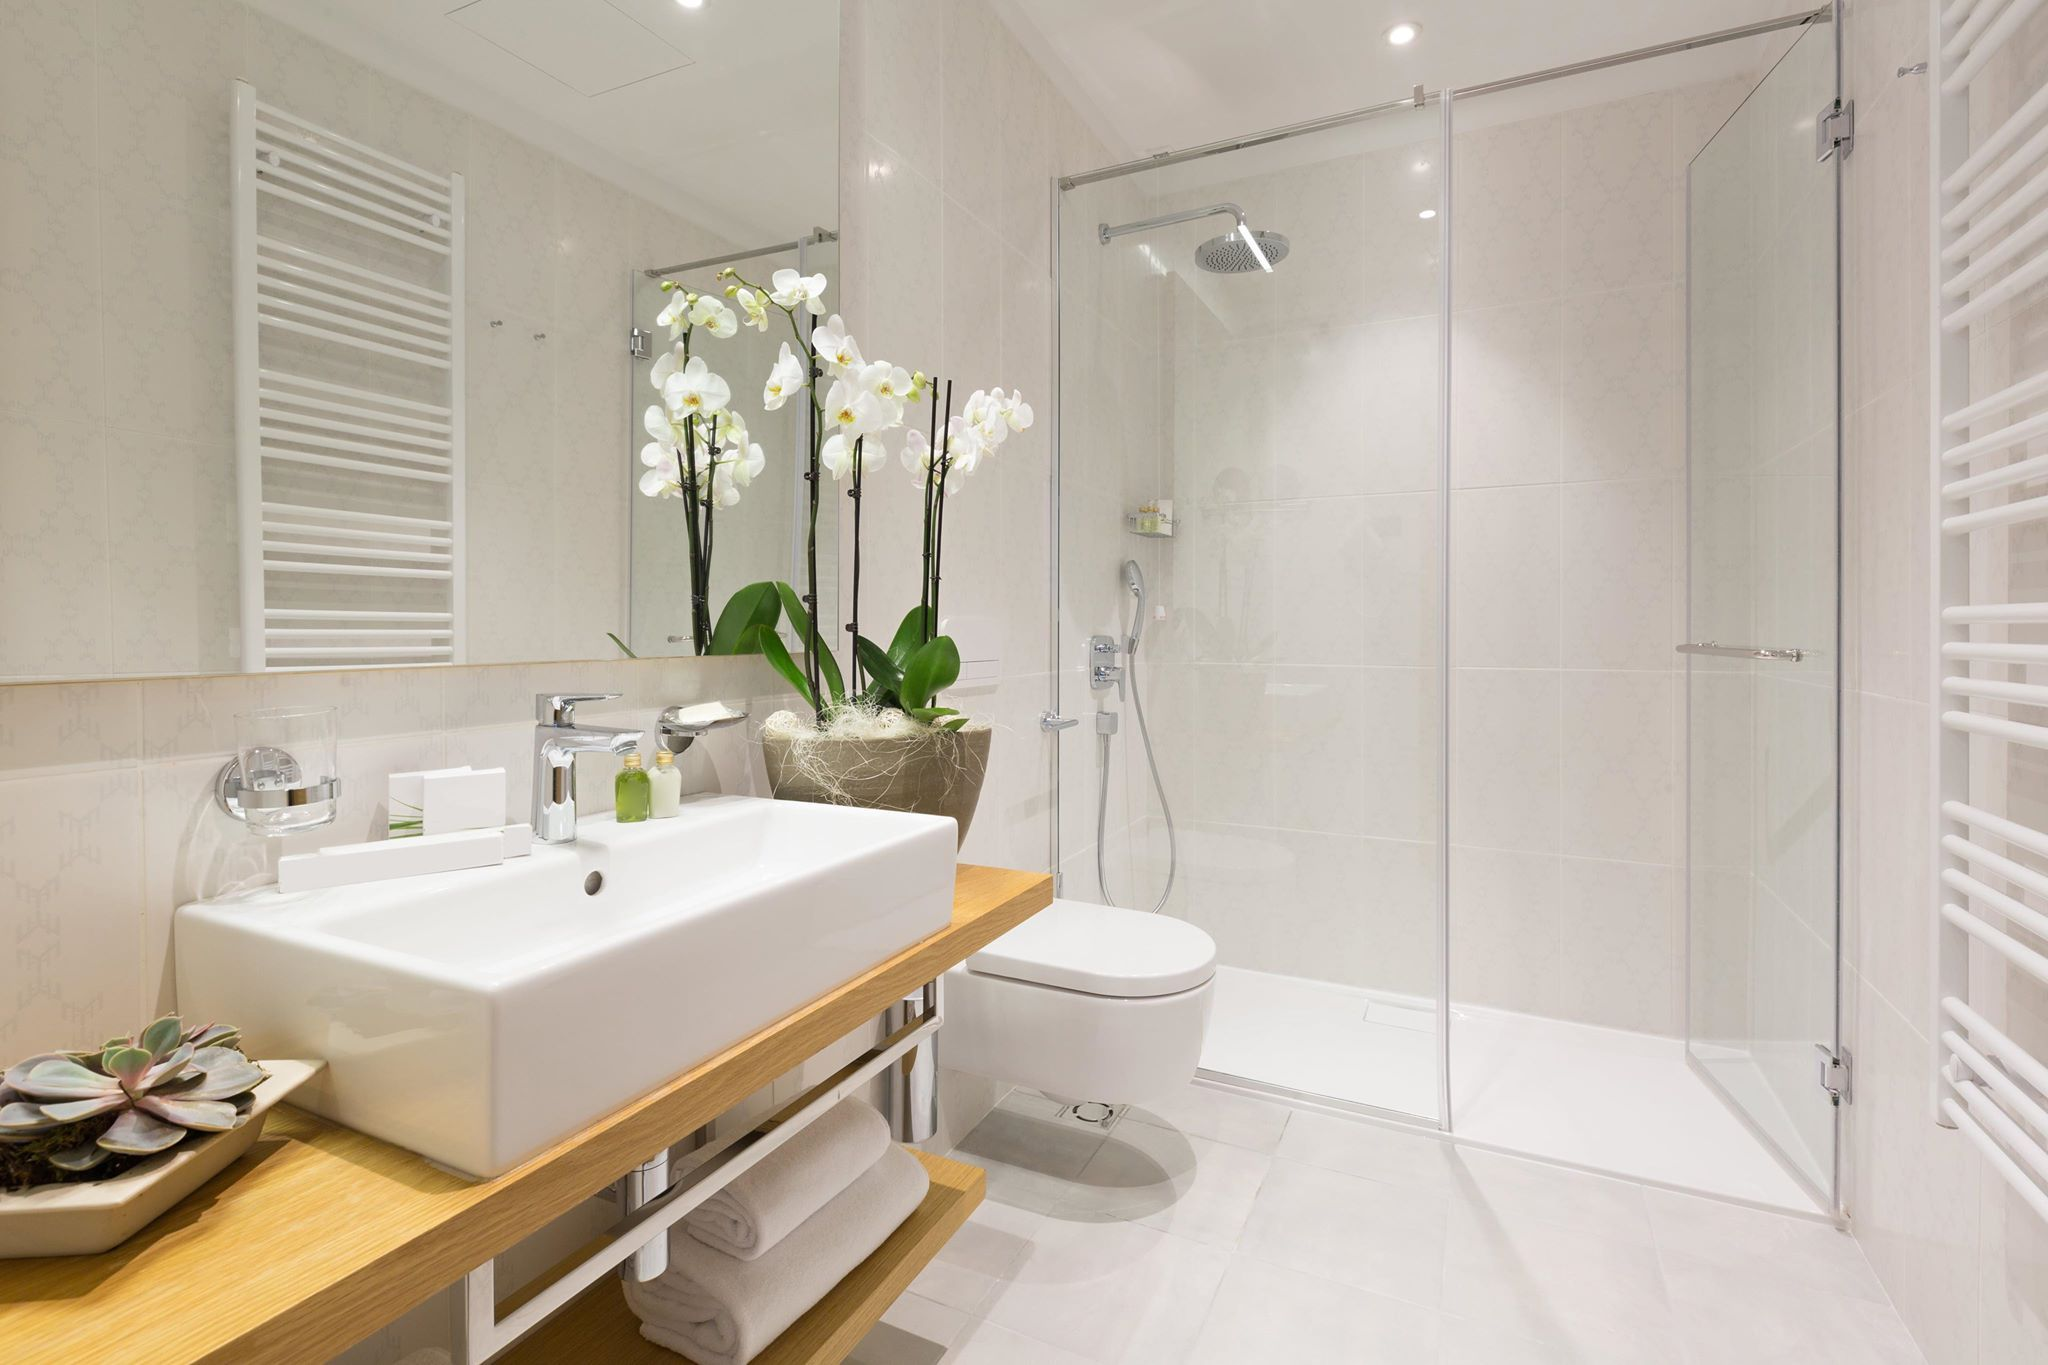 Pin by JPPV - Renovations Melbourne on Bathroom ...